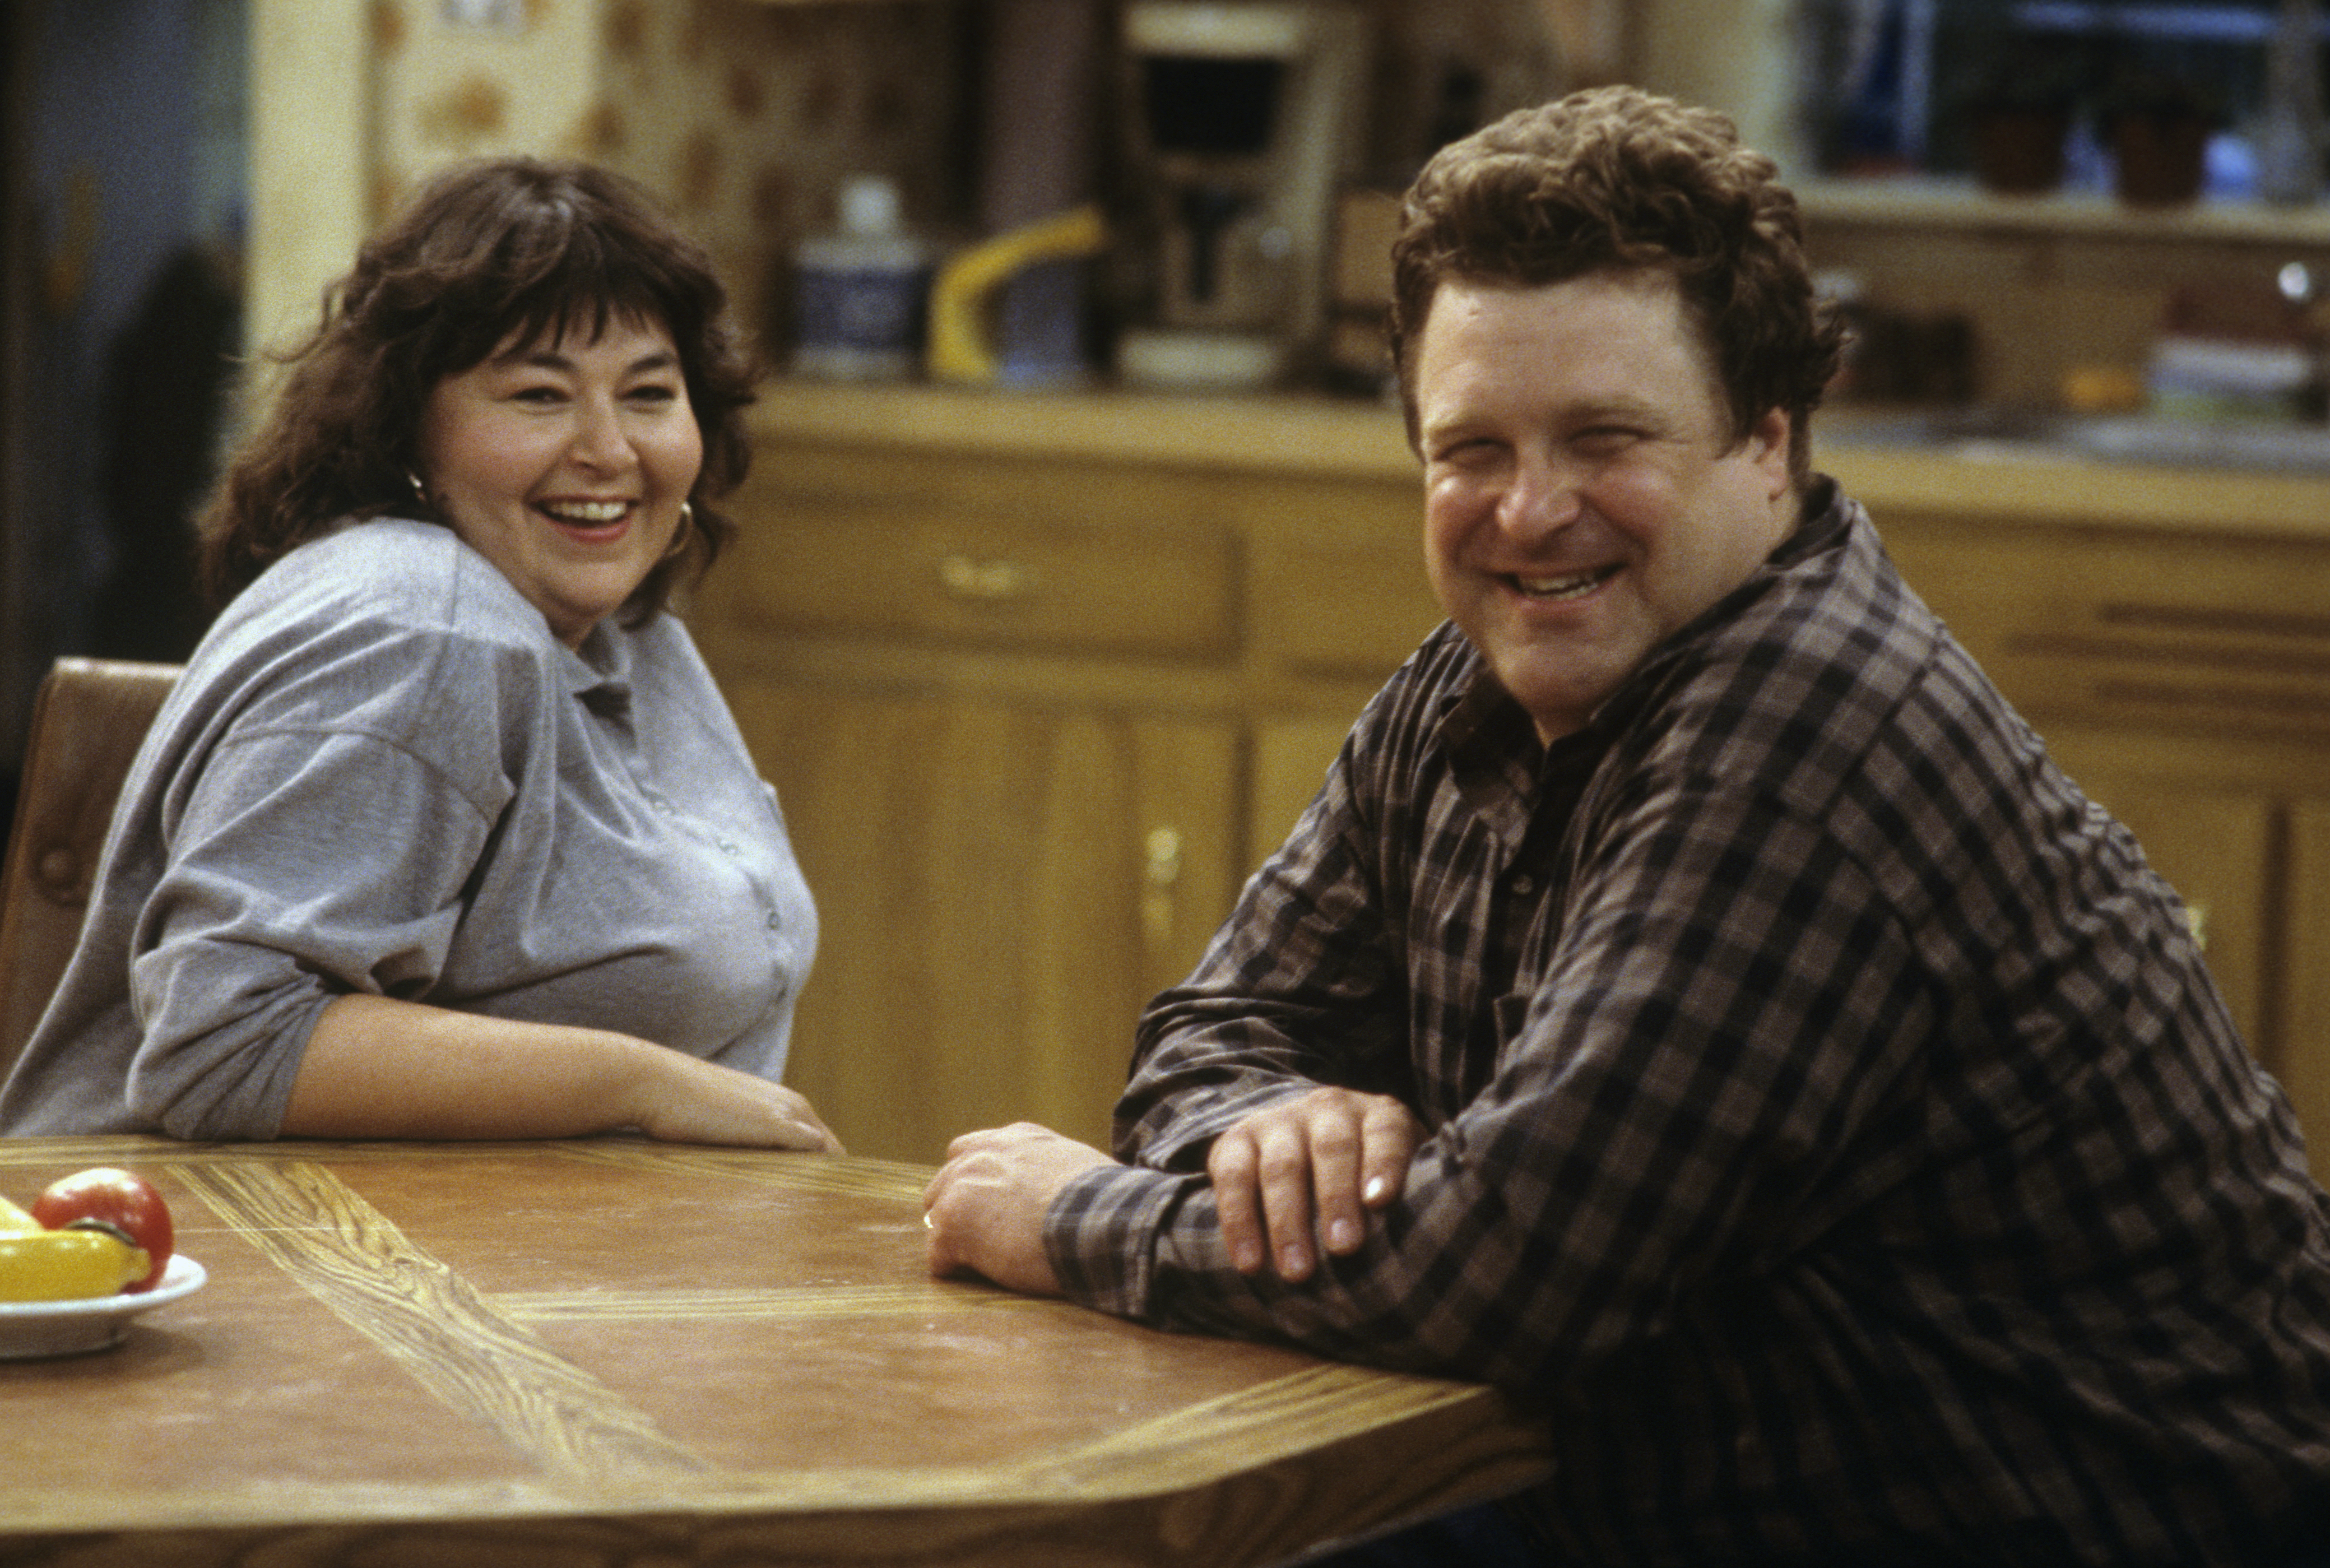 Are John Goodman and Roseanne Barr Married? Find out Here!